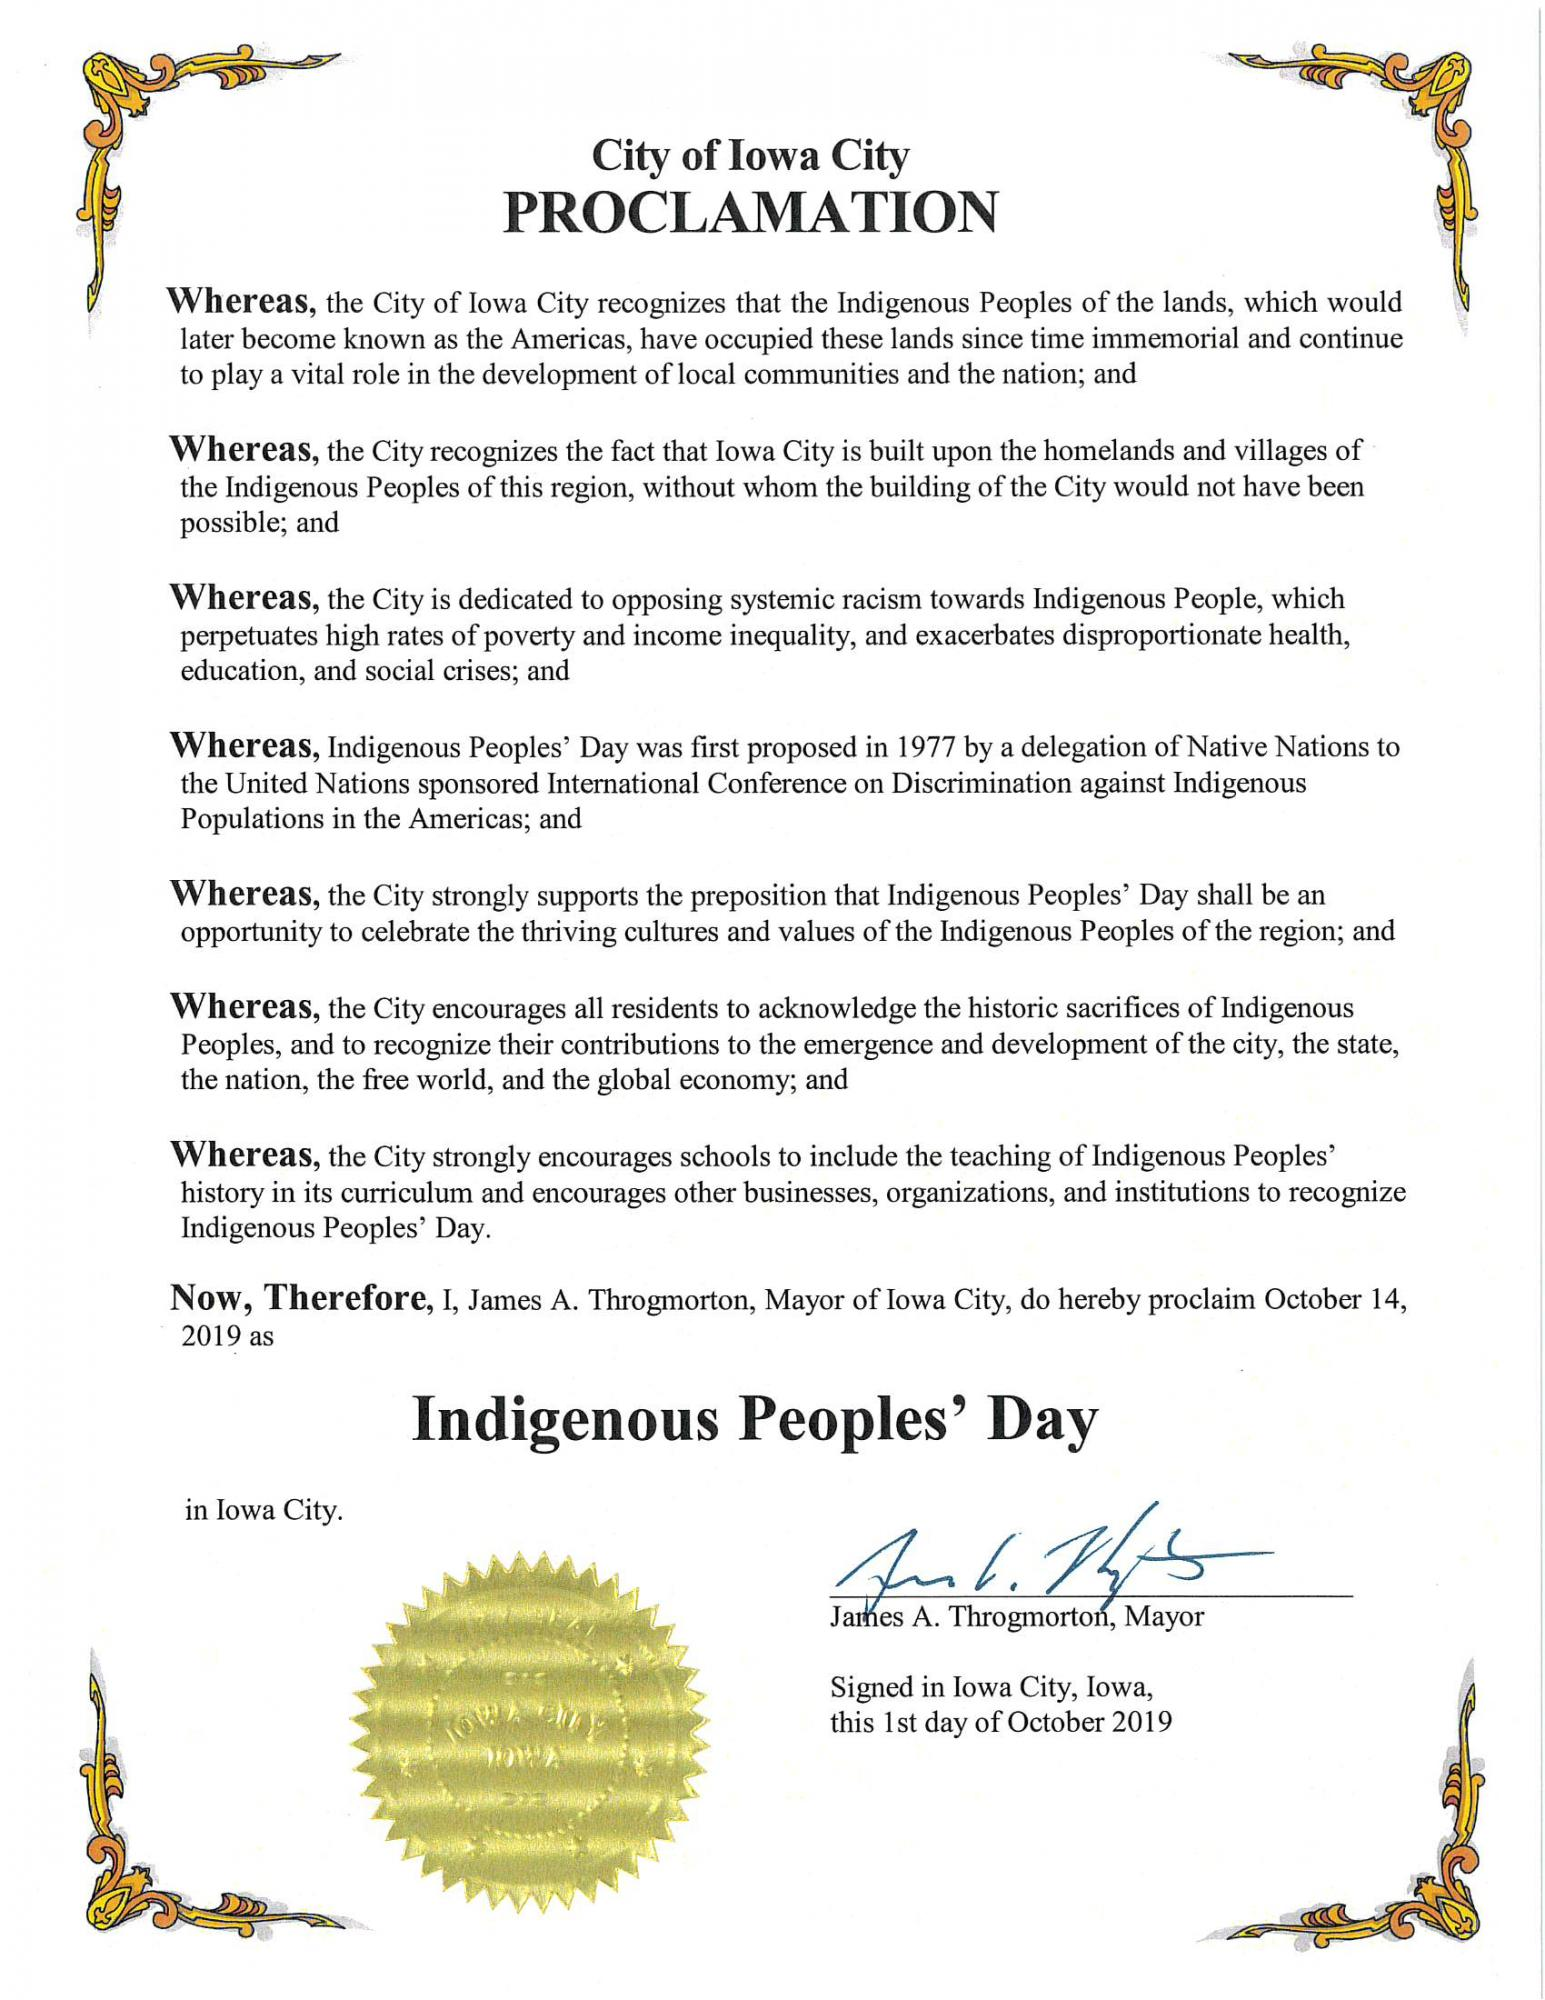 Proclamation for Indigenous People's Day.